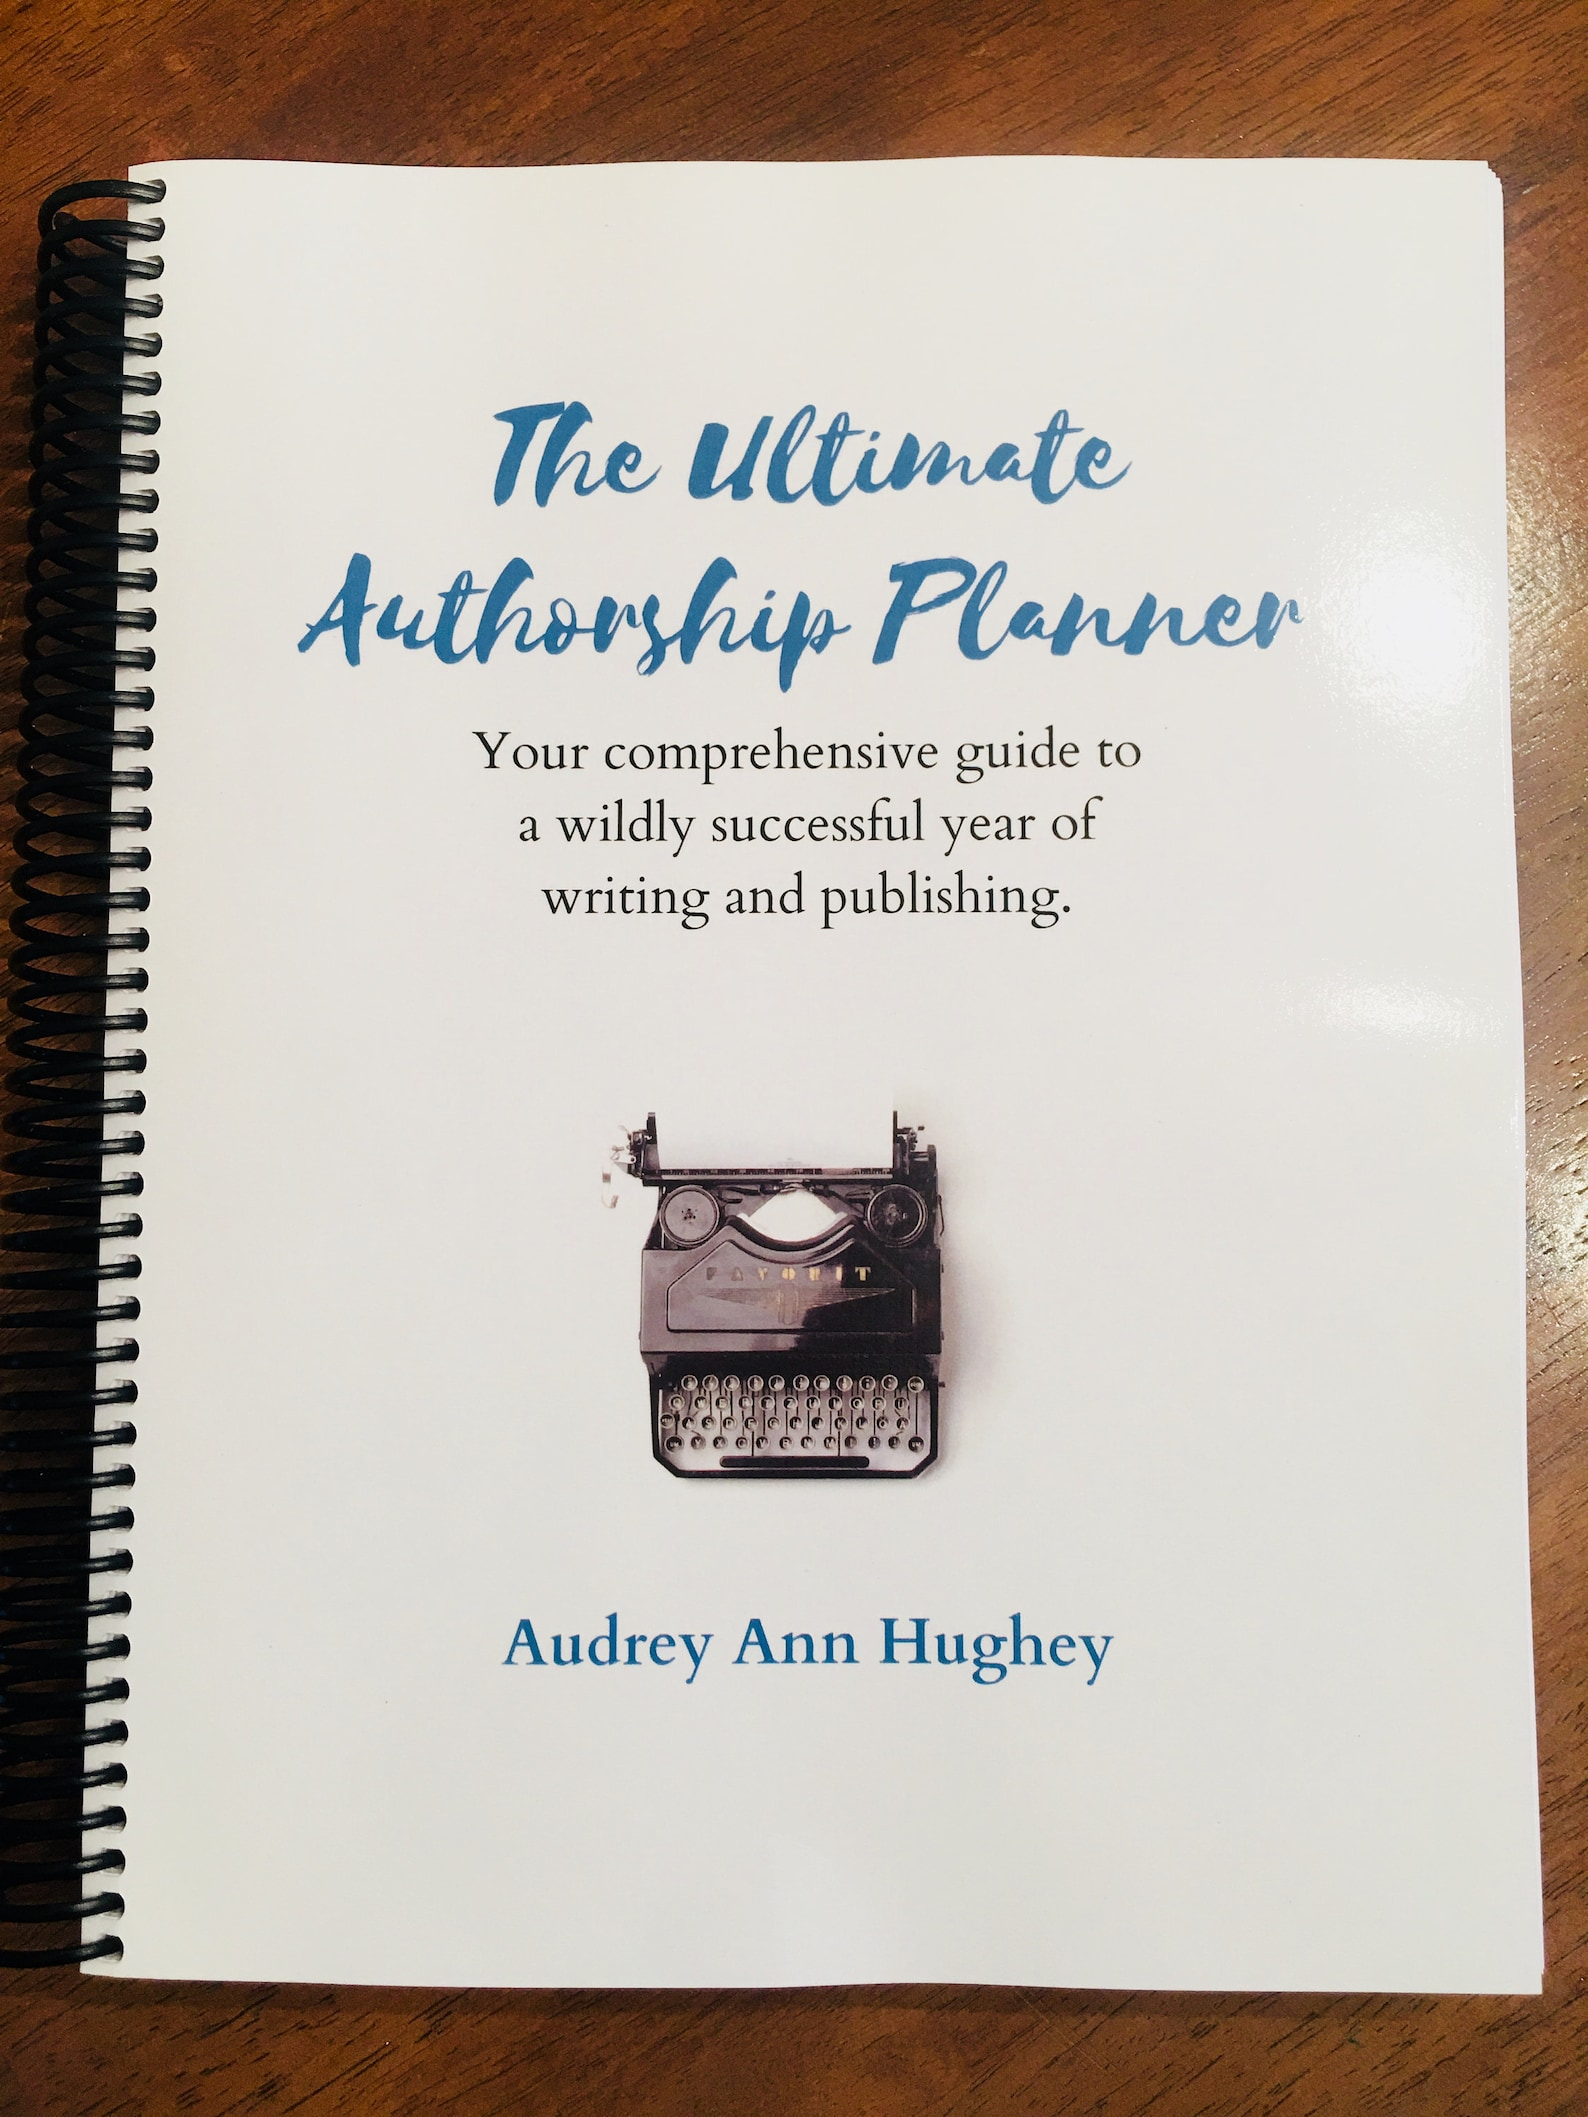 The Ultimate Authorship Planner